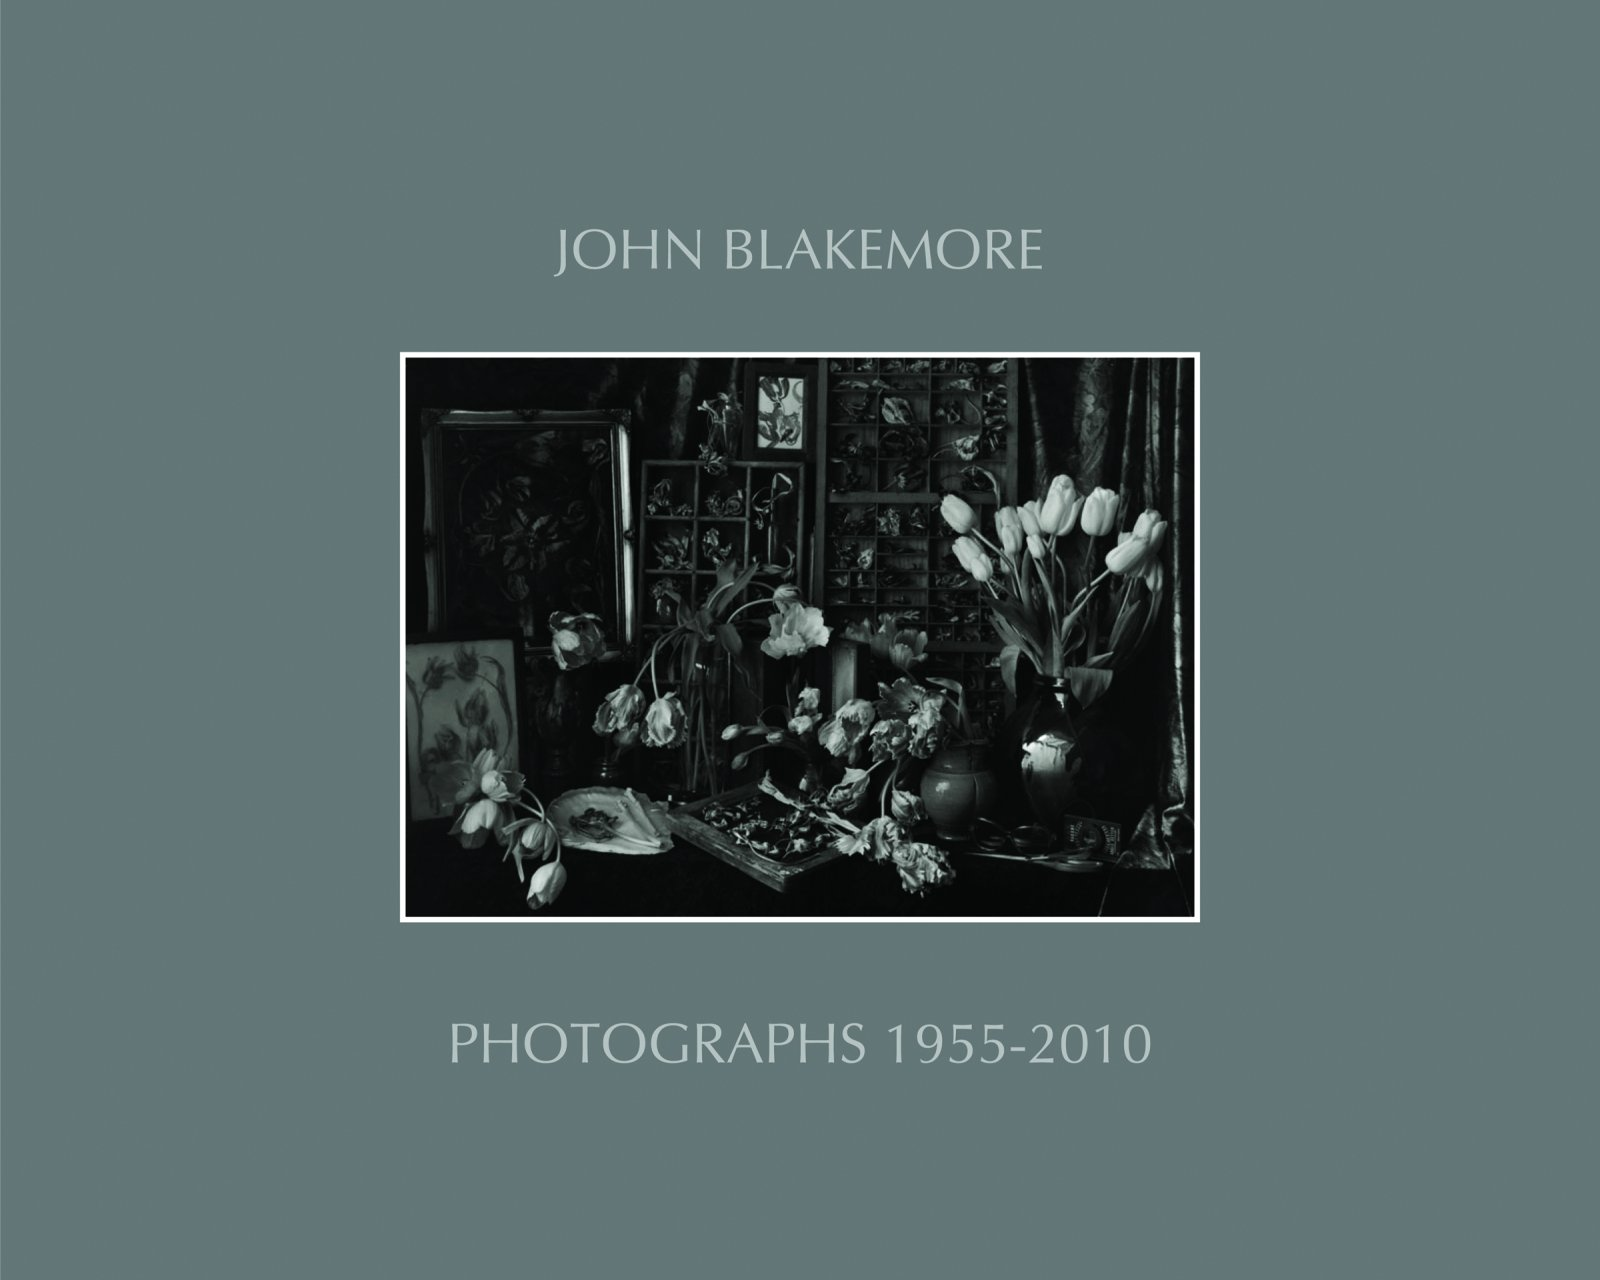 Follow the author john blakemore